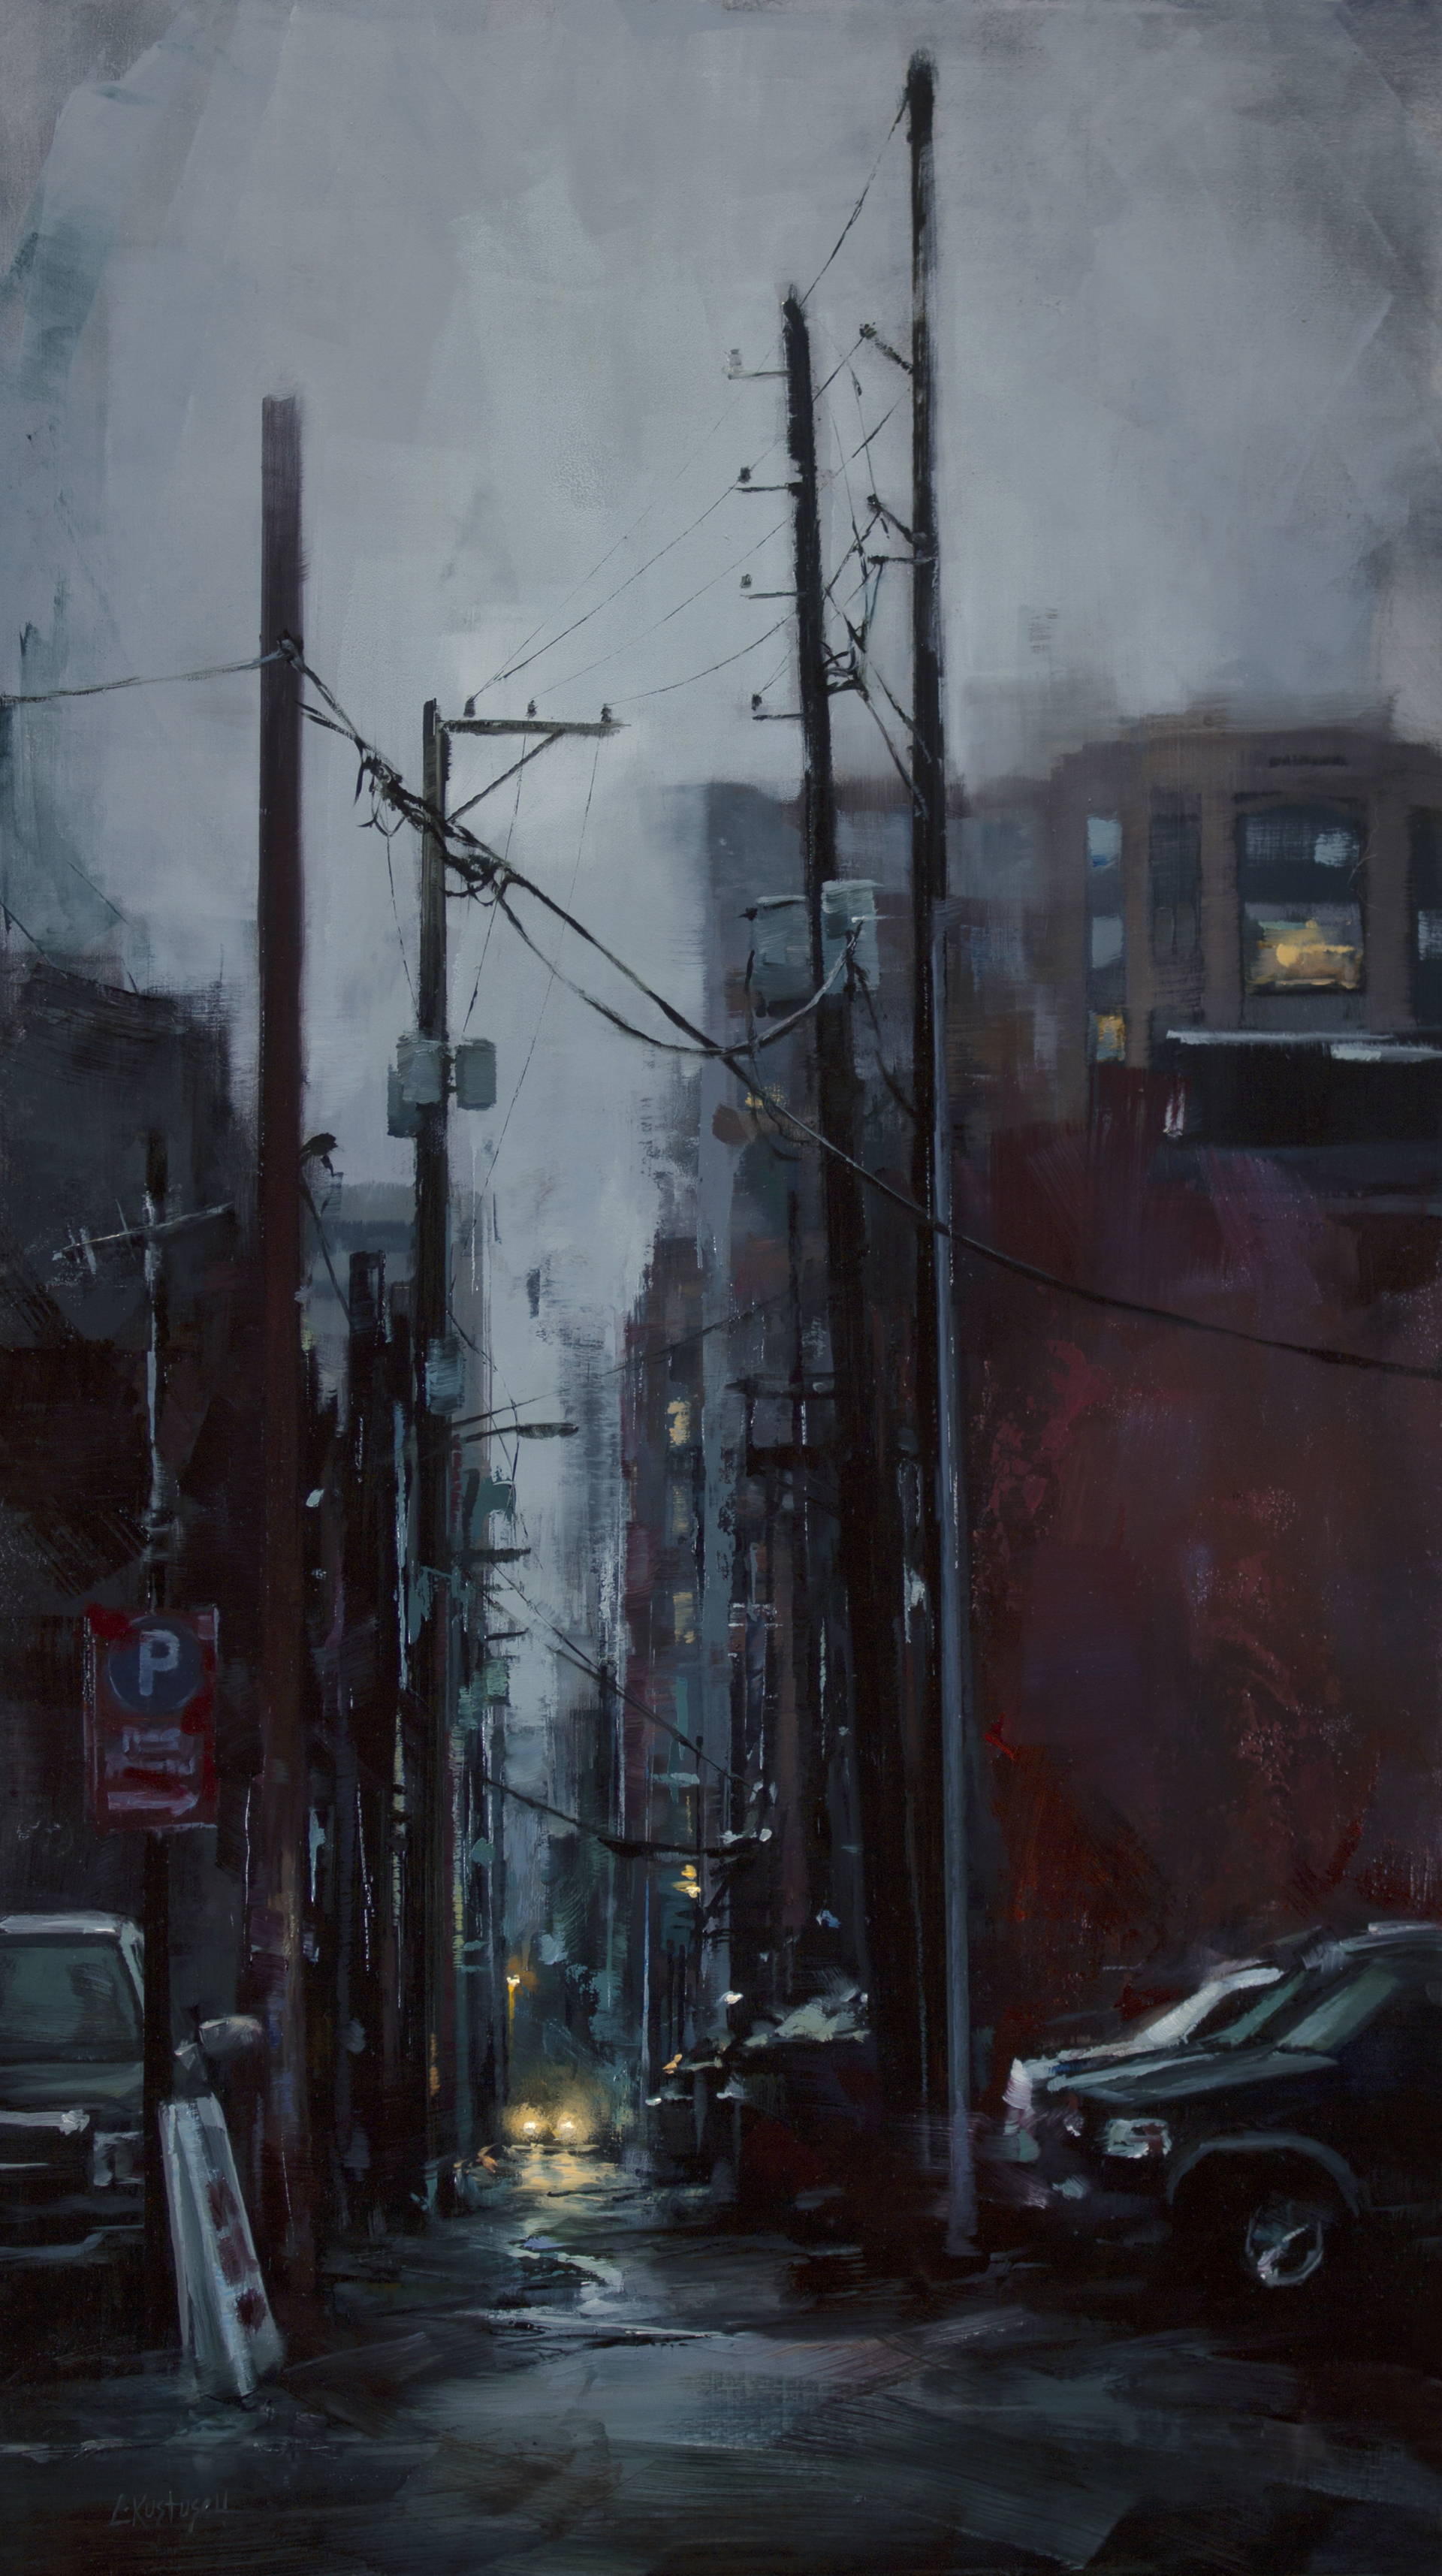 On Foot in the City by Lindsey Kustusch